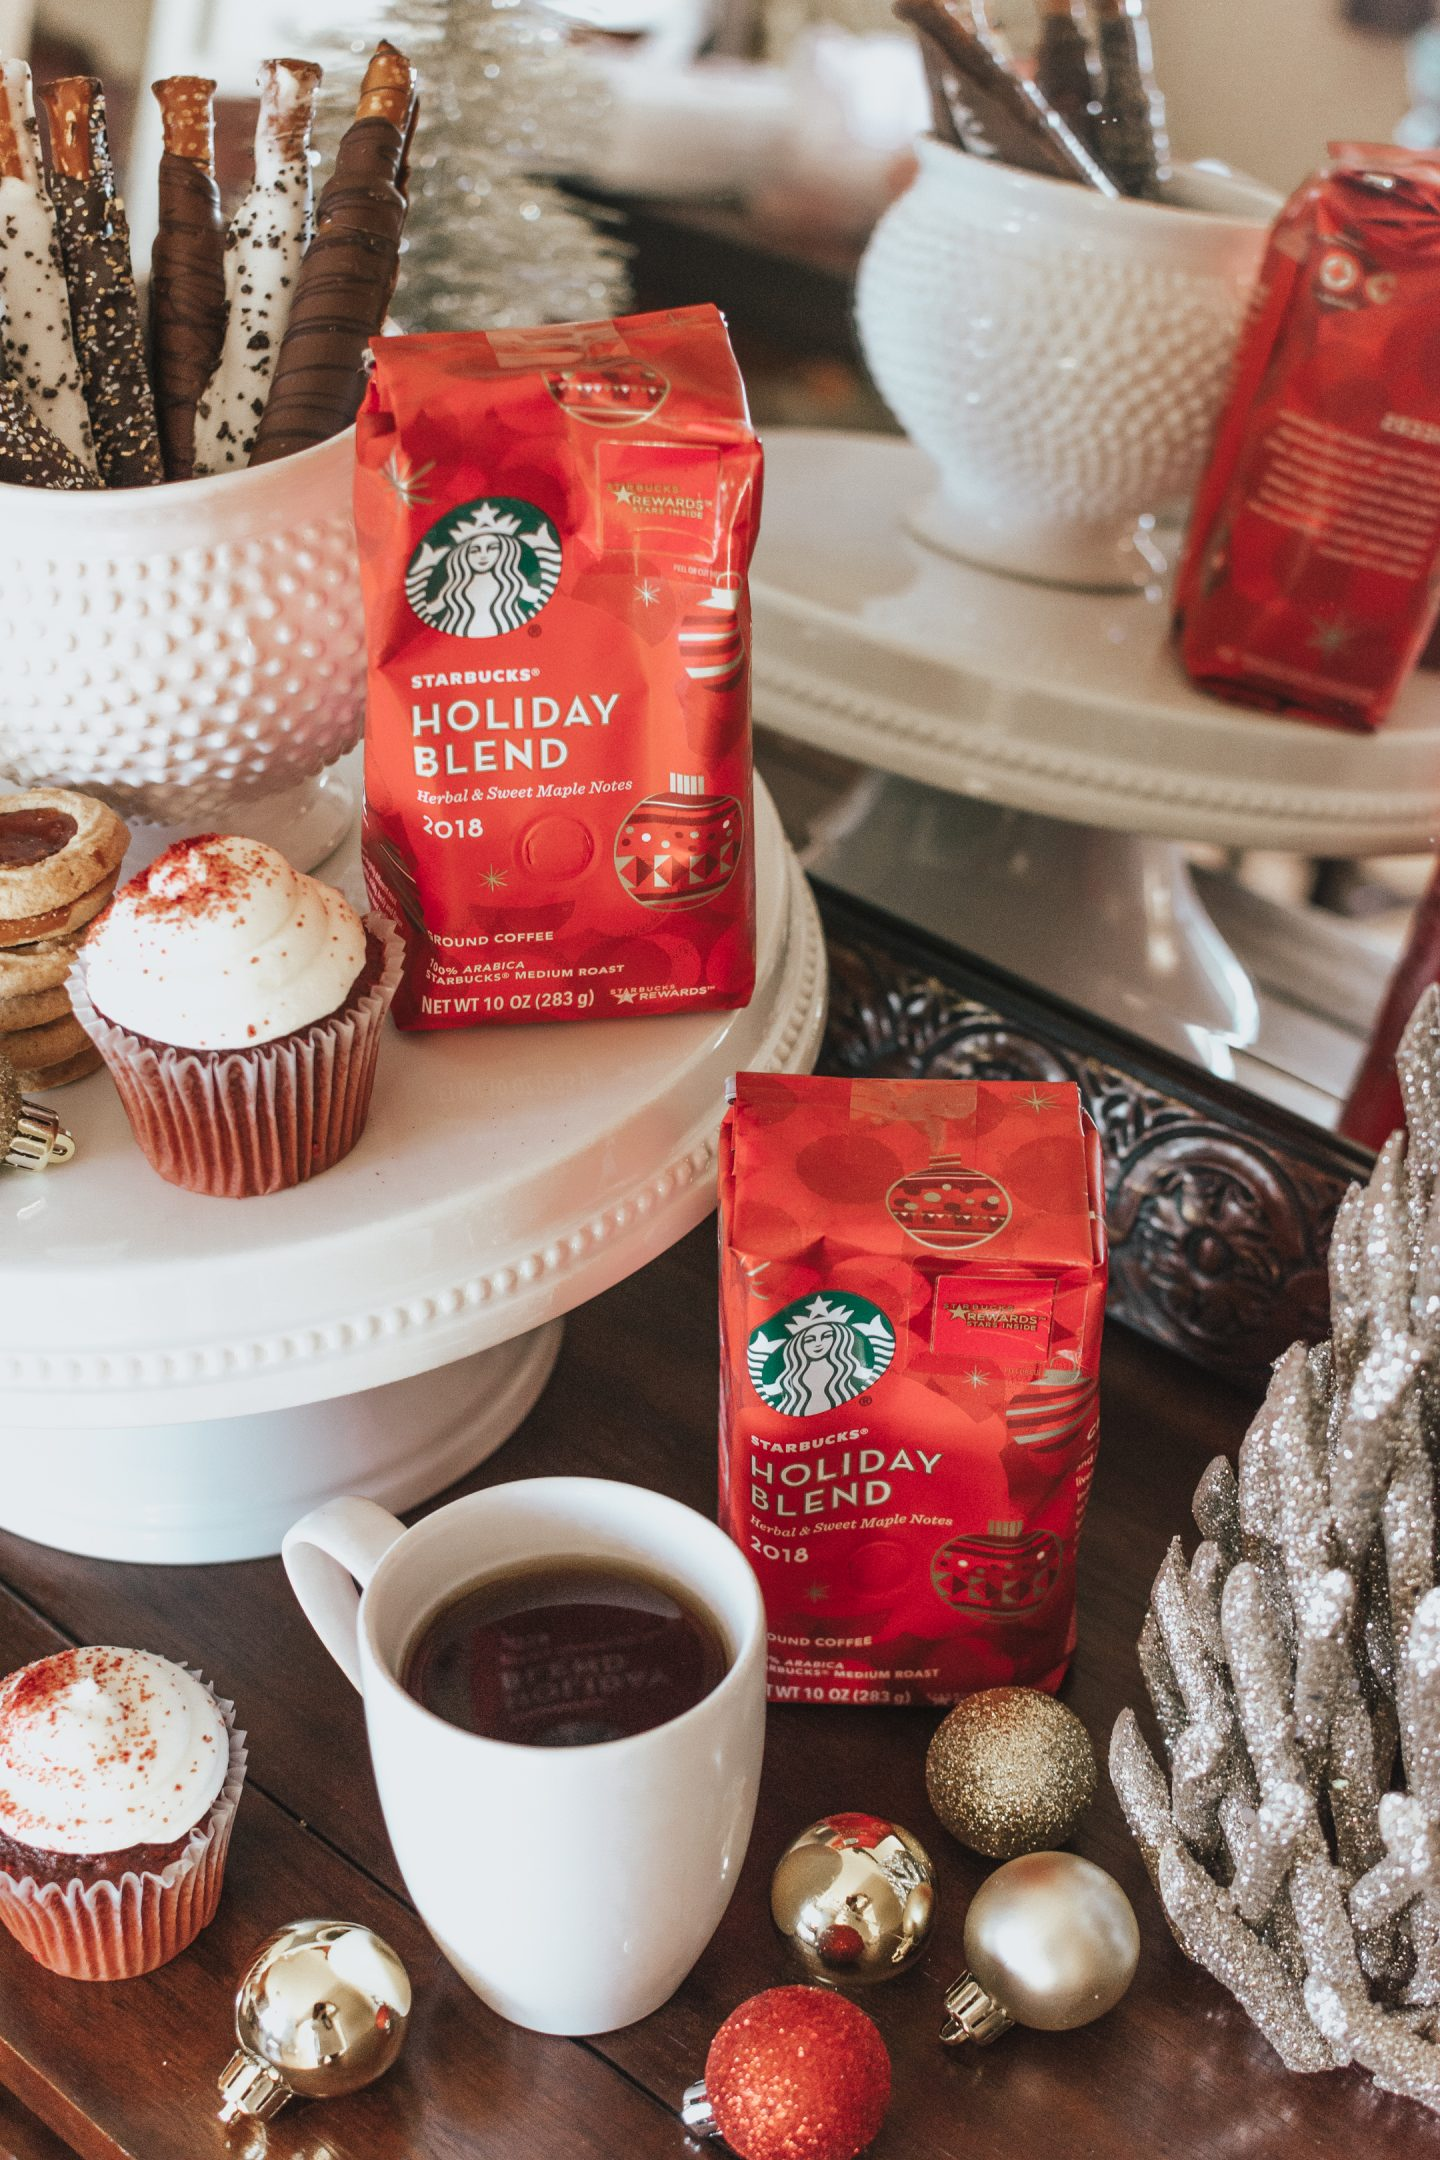 Holiday Coffee Station, Starbucks Holiday Blend, Entertaining During the Holidays, holiday themed coffee station, holiday coffee and dessert pairings